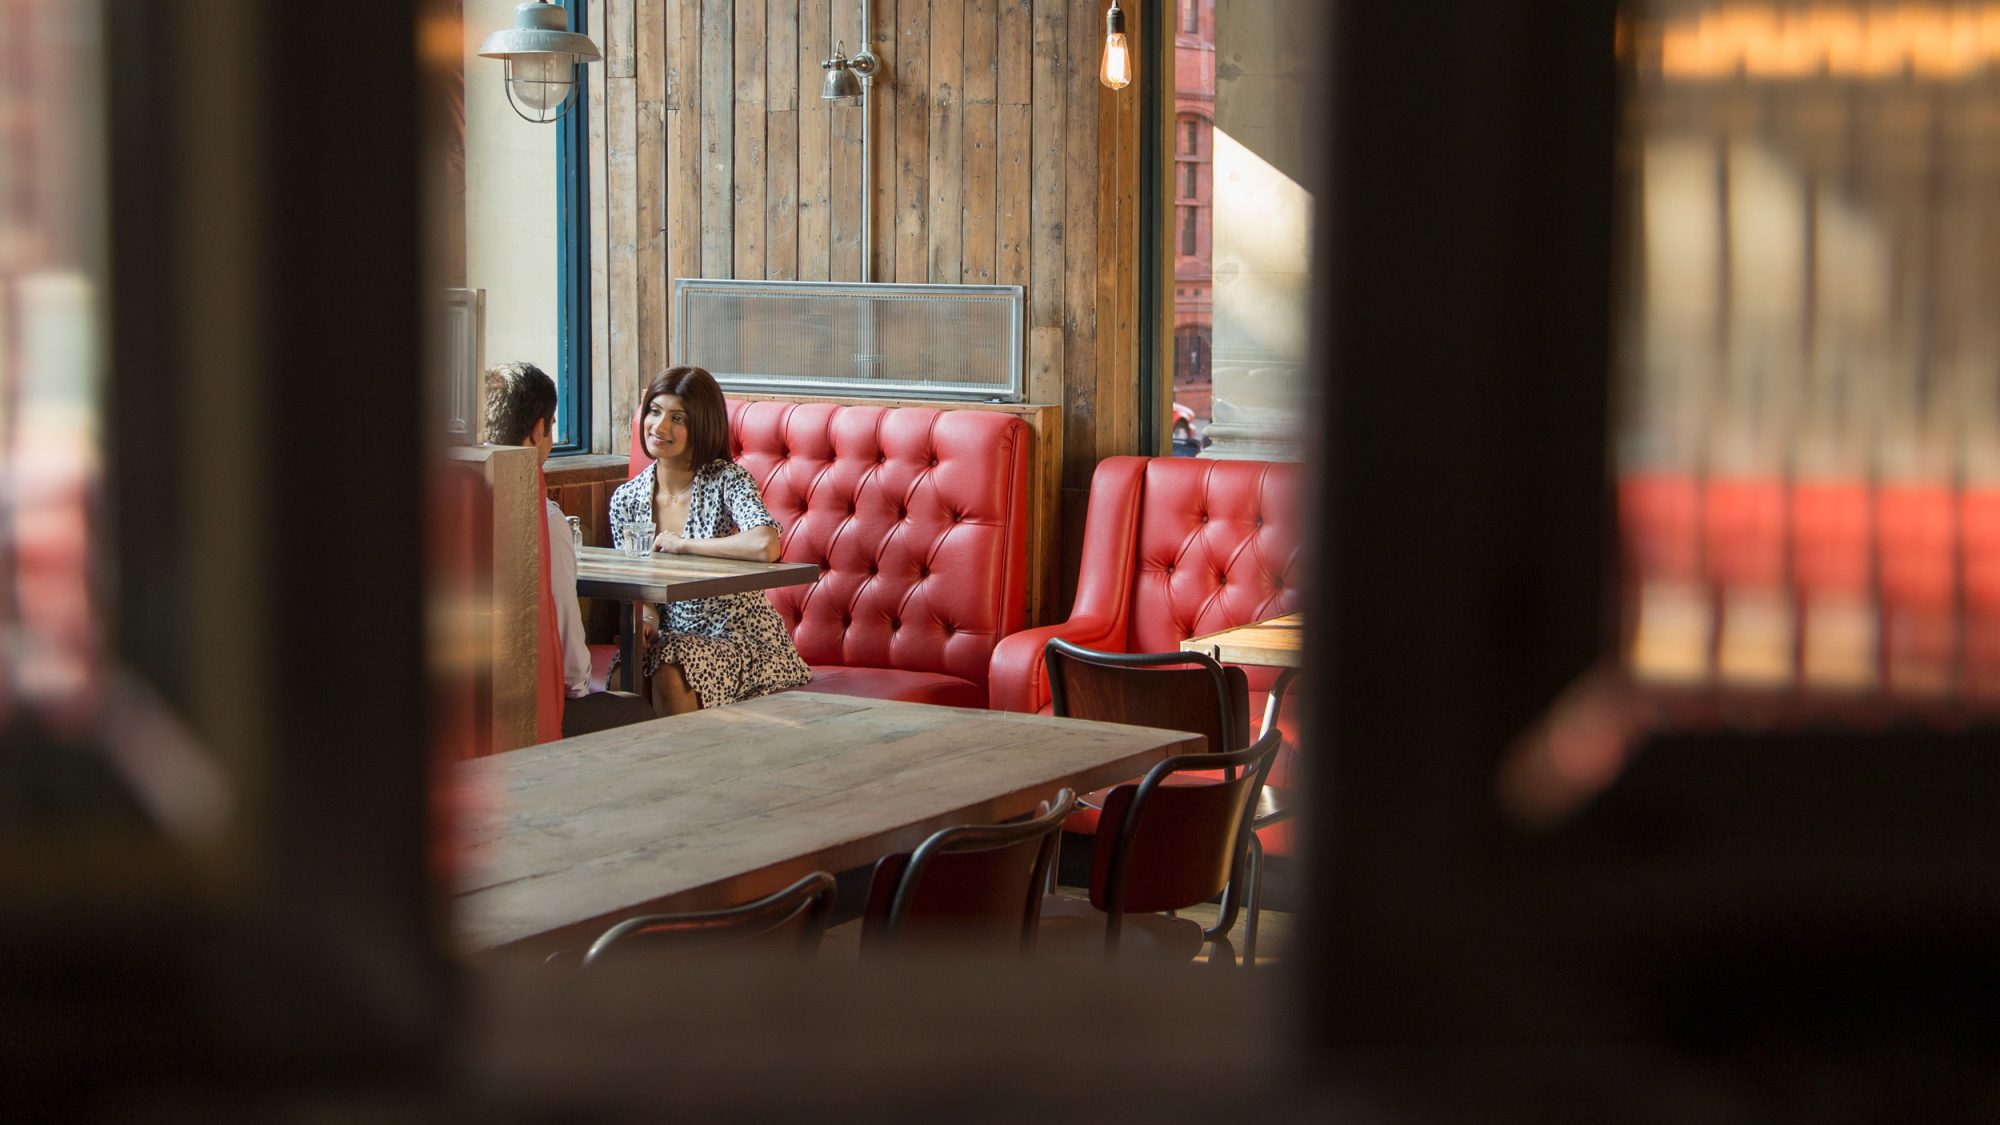 Dating Apps and Restaurant Culture